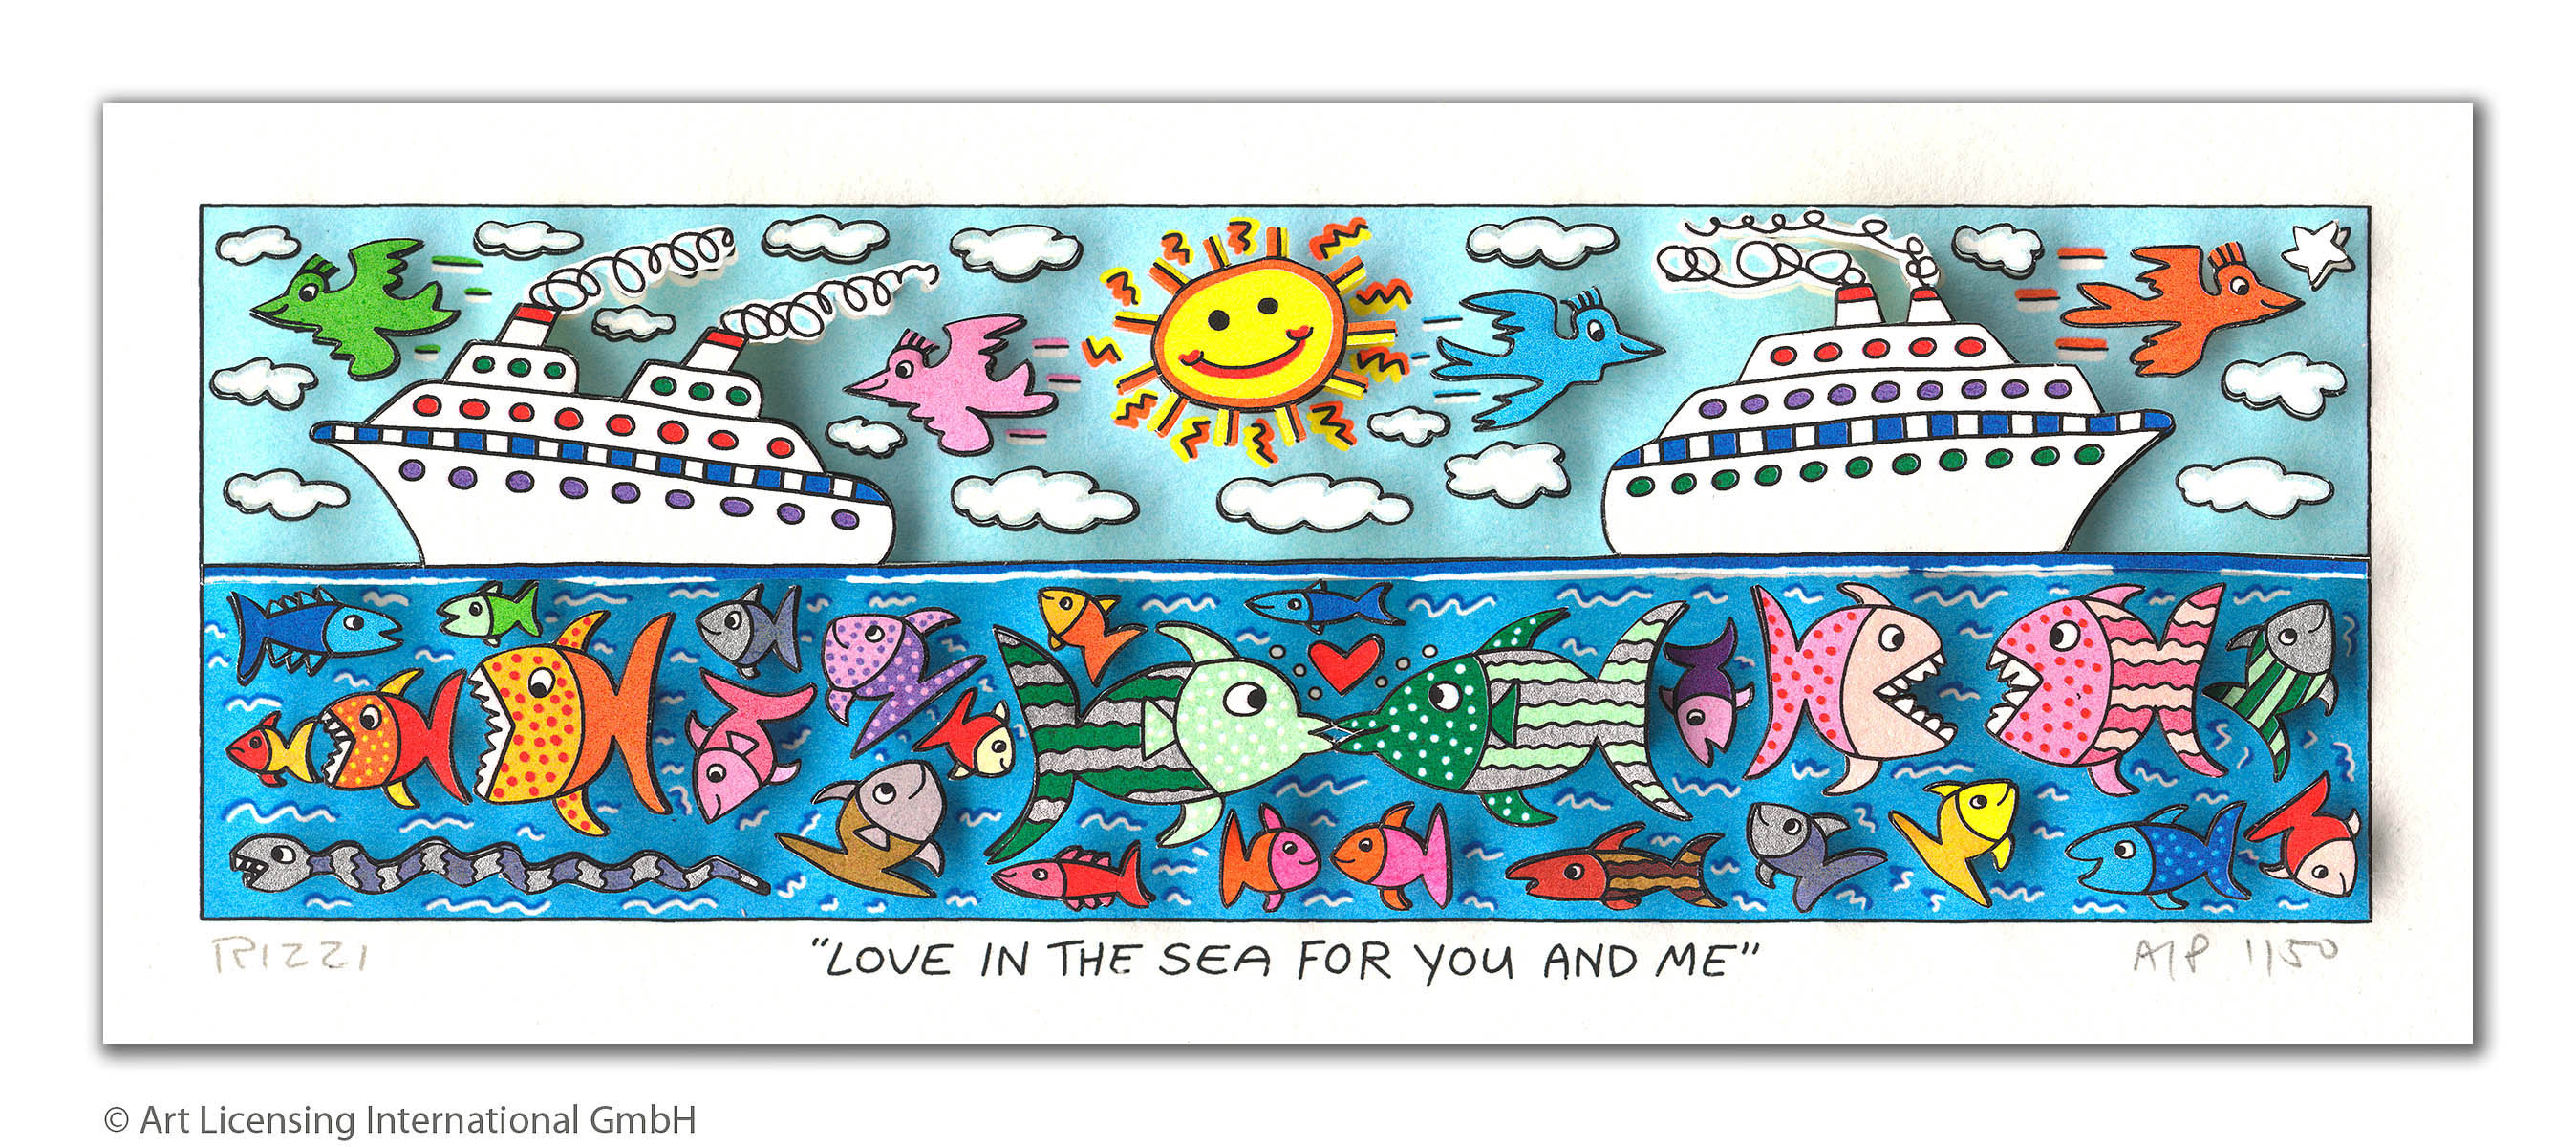 James Rizzi - Love in the Sea for you and me